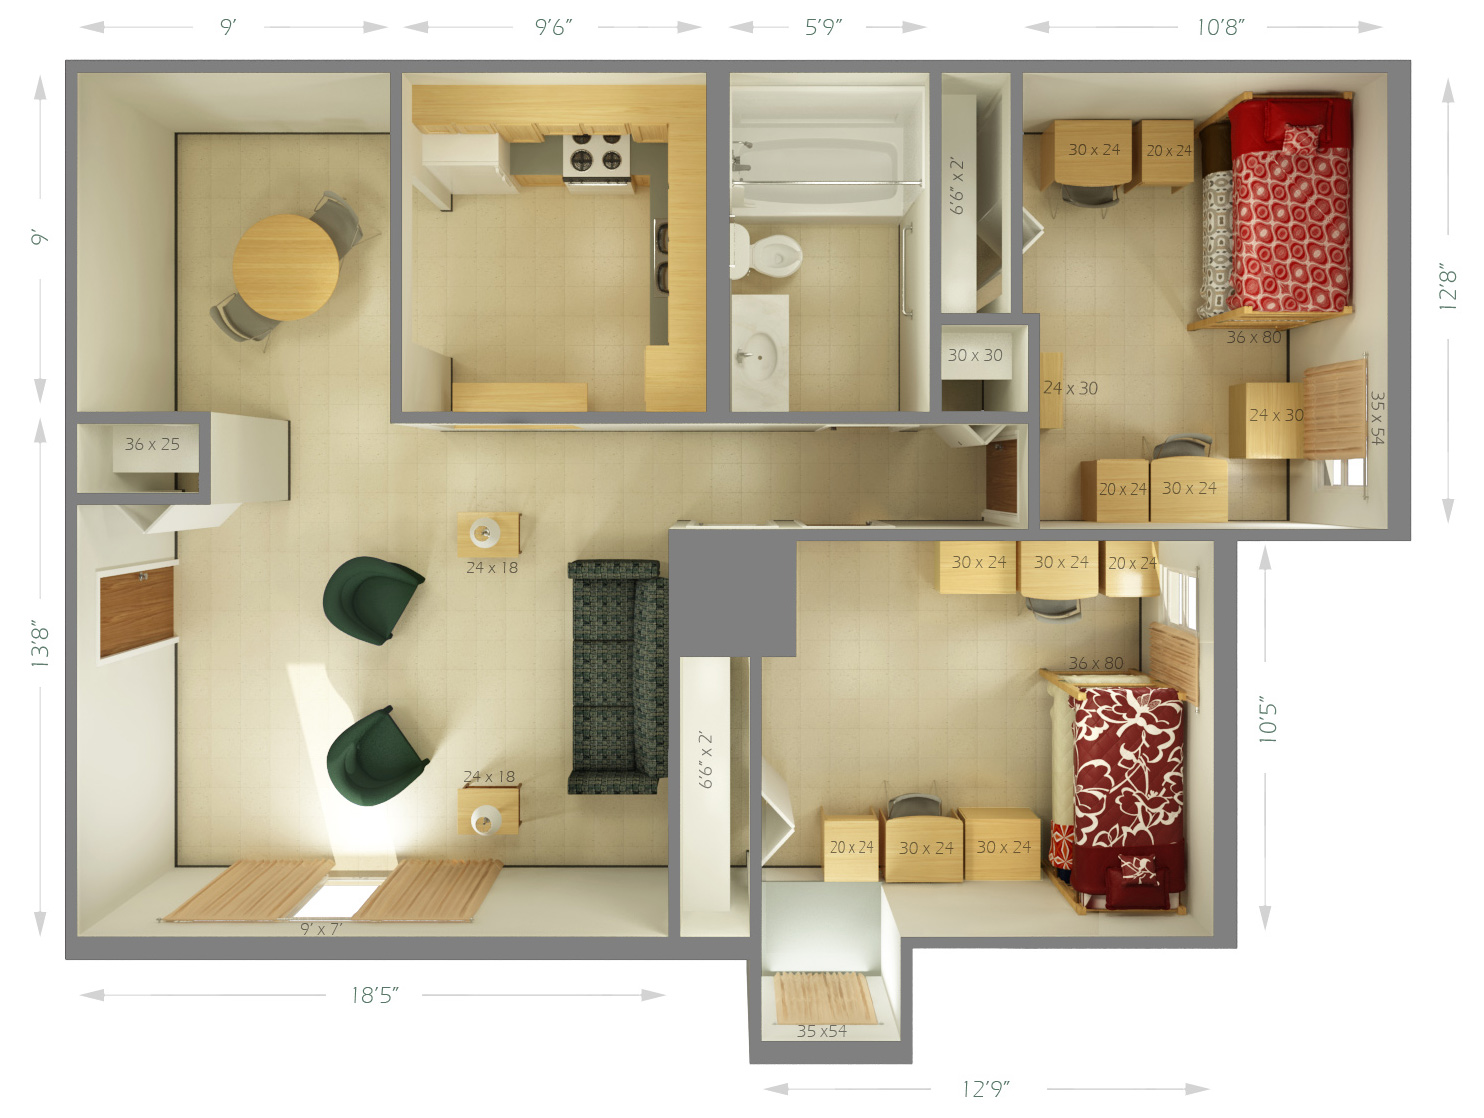 University housing cougar village room dimensions siue for 10 by 10 room layout